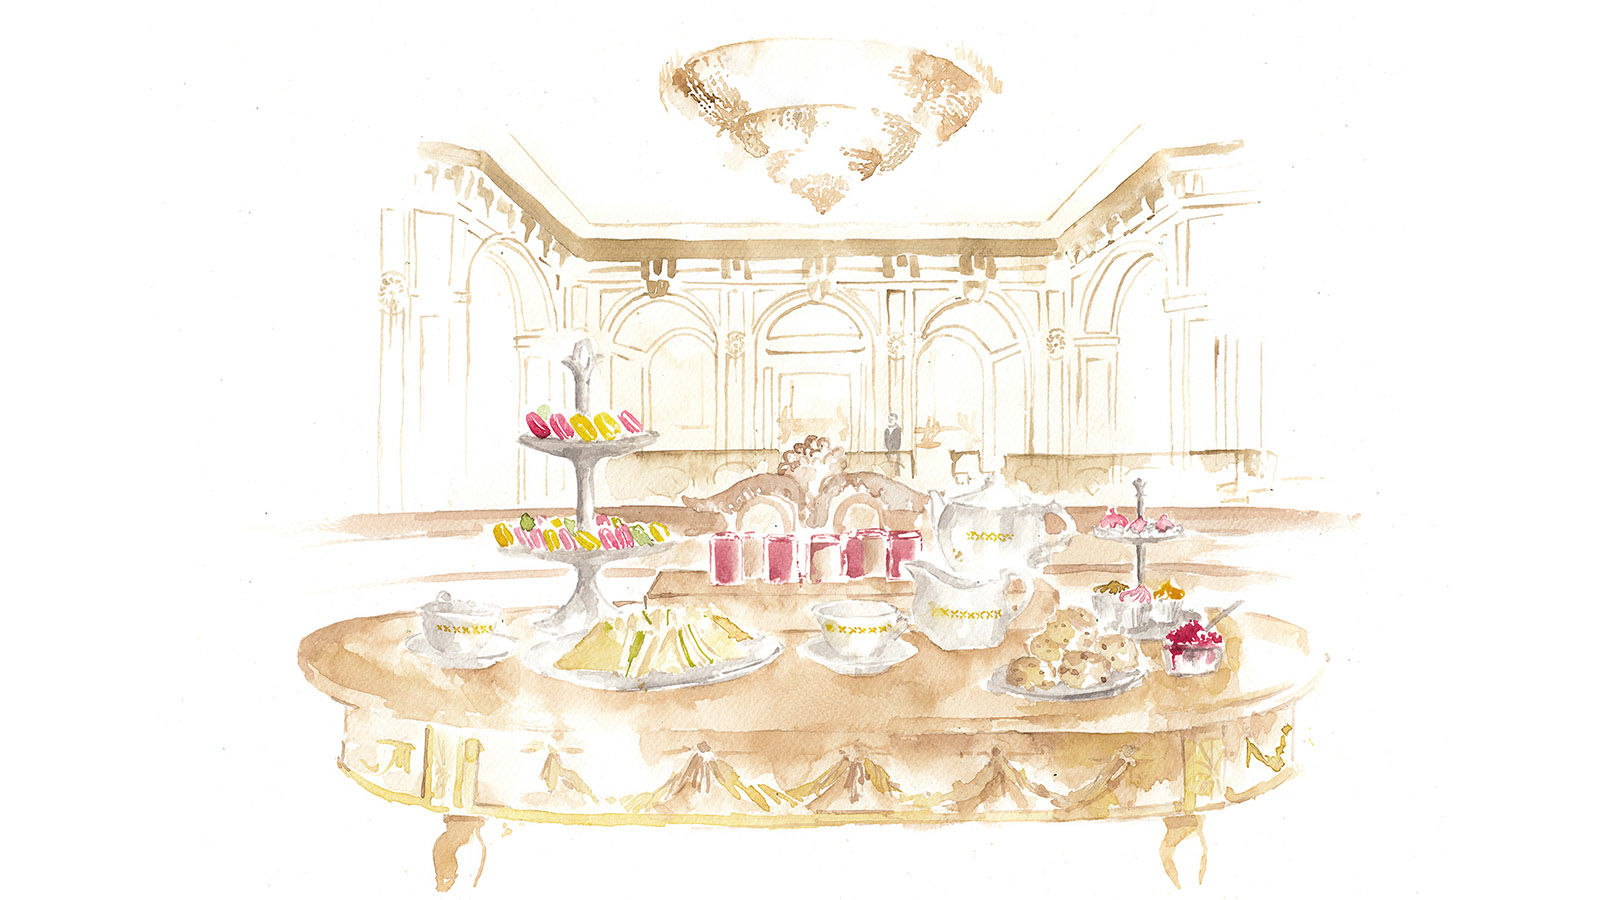 Afternoon Tea Ritual Illustration